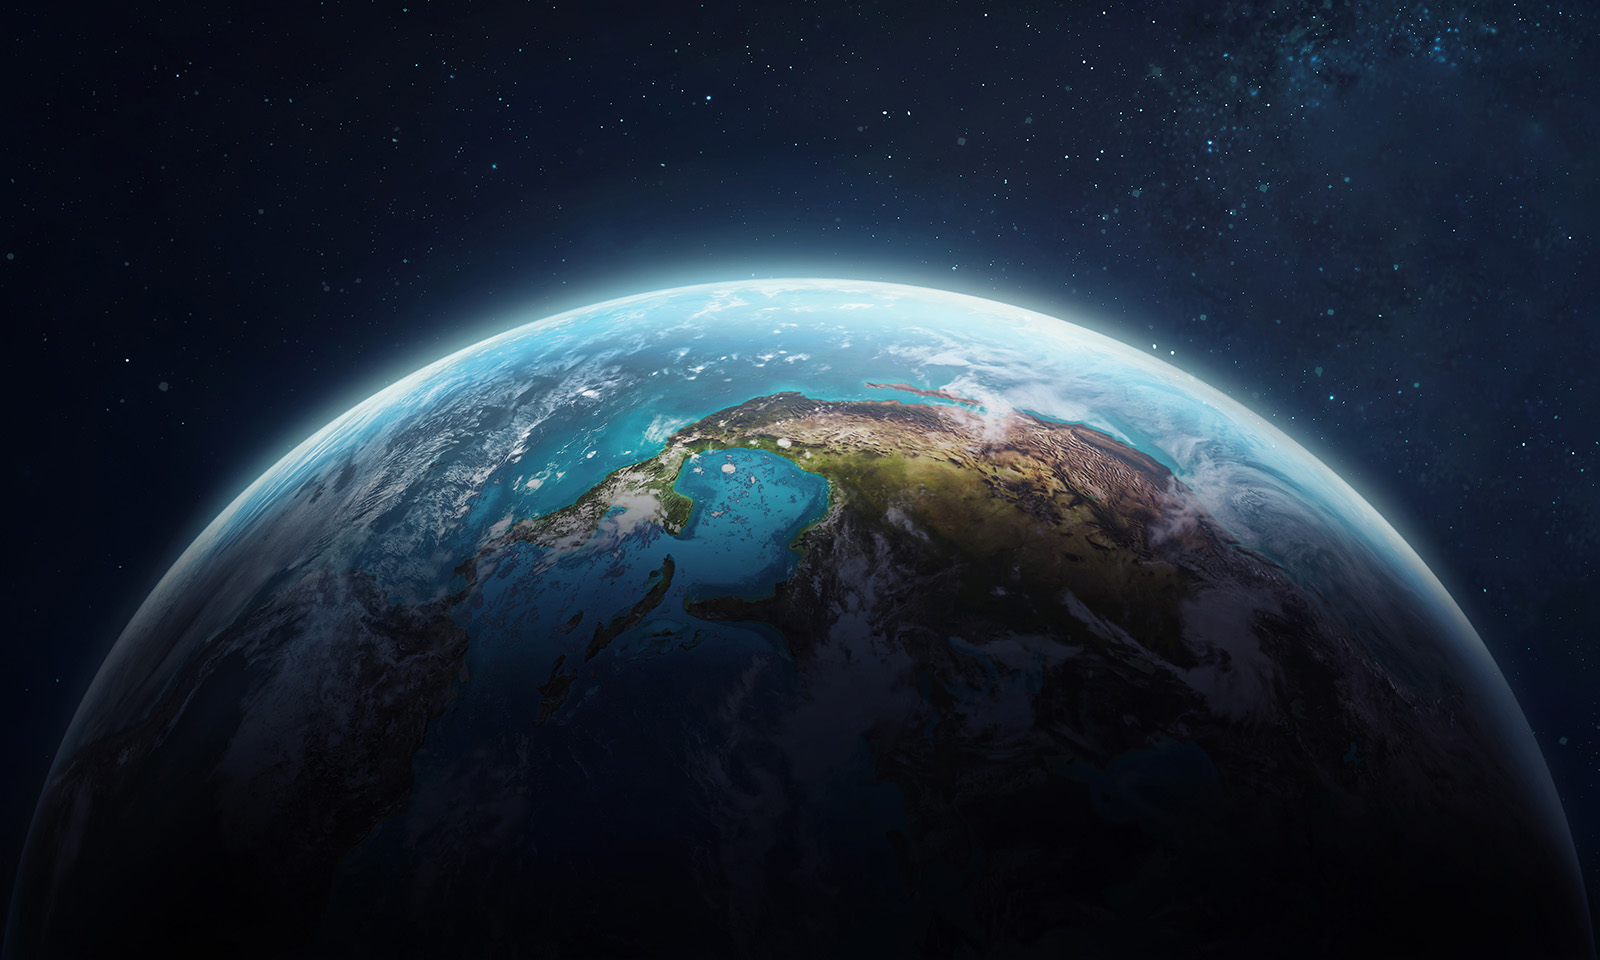 Image of the earth from outer space